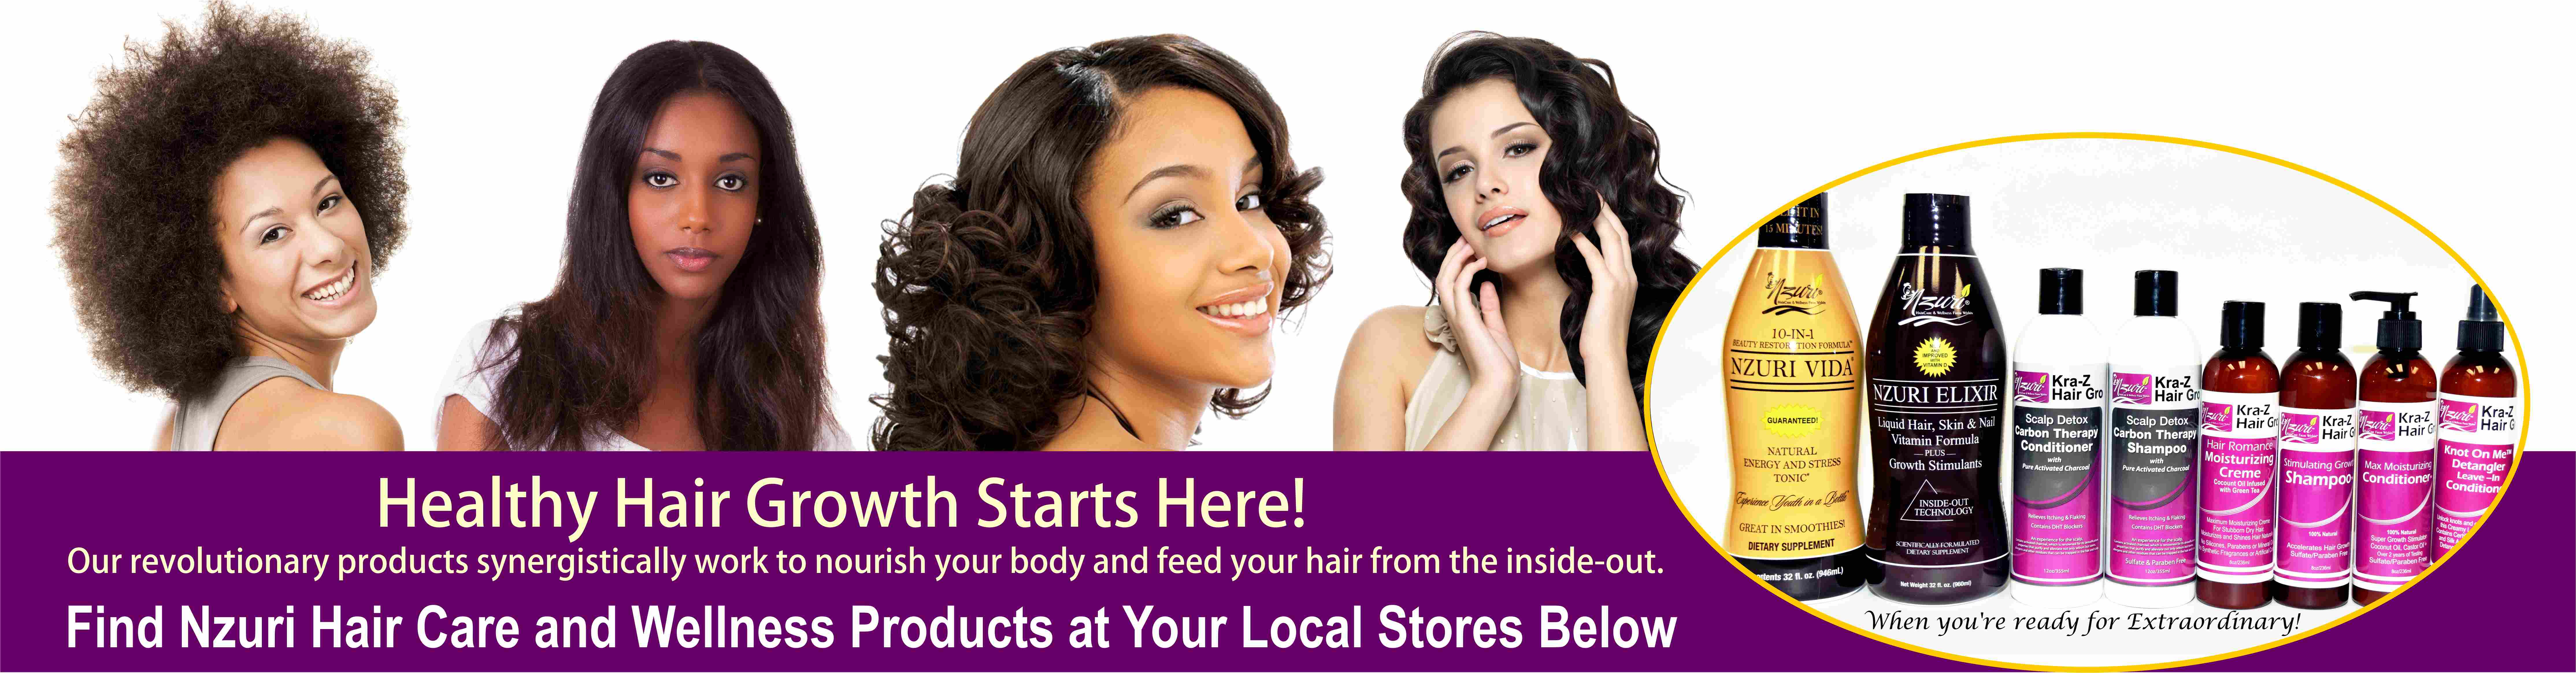 Nzuri Products Store Locations